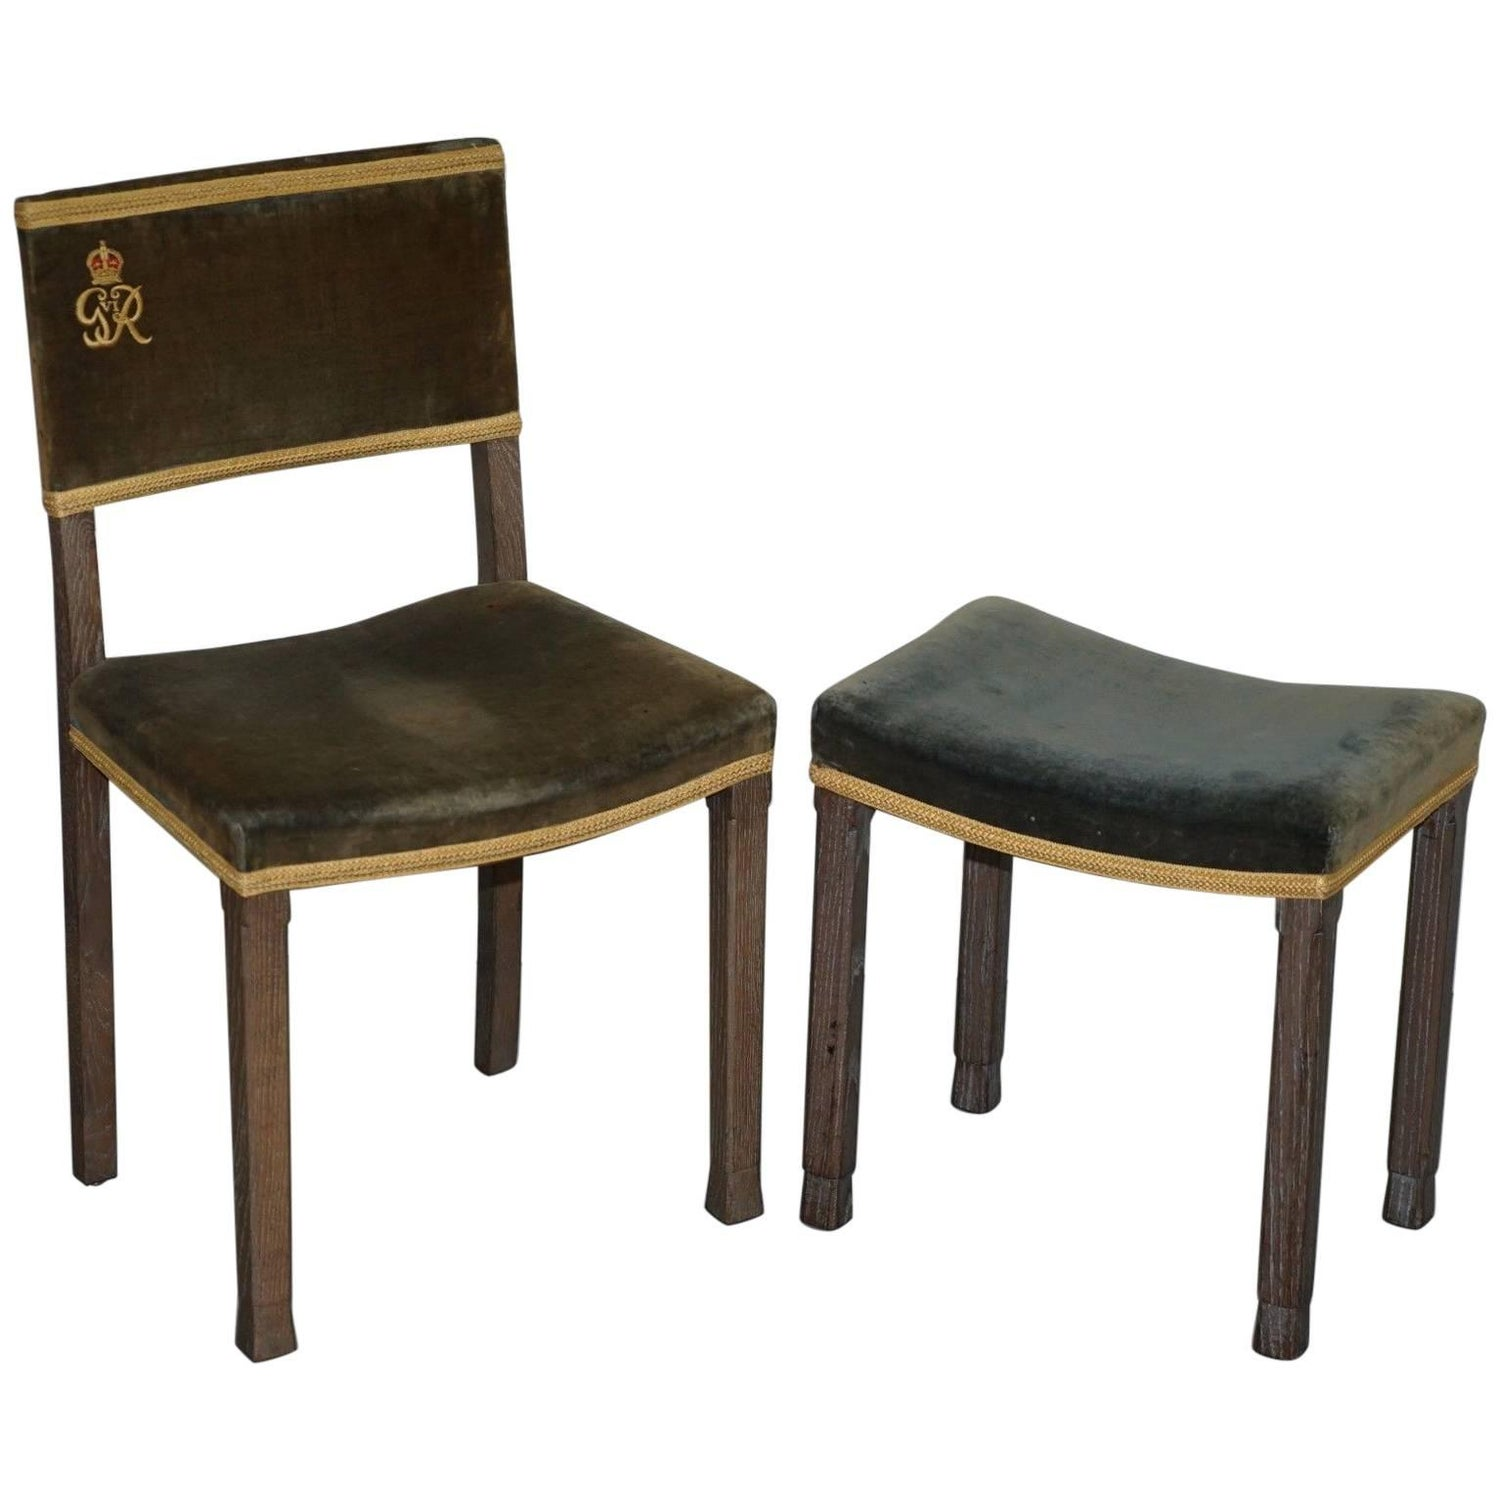 Maple And Co Furniture 30 For Sale At 1stdibs # Muebles Maple Buenos Aires